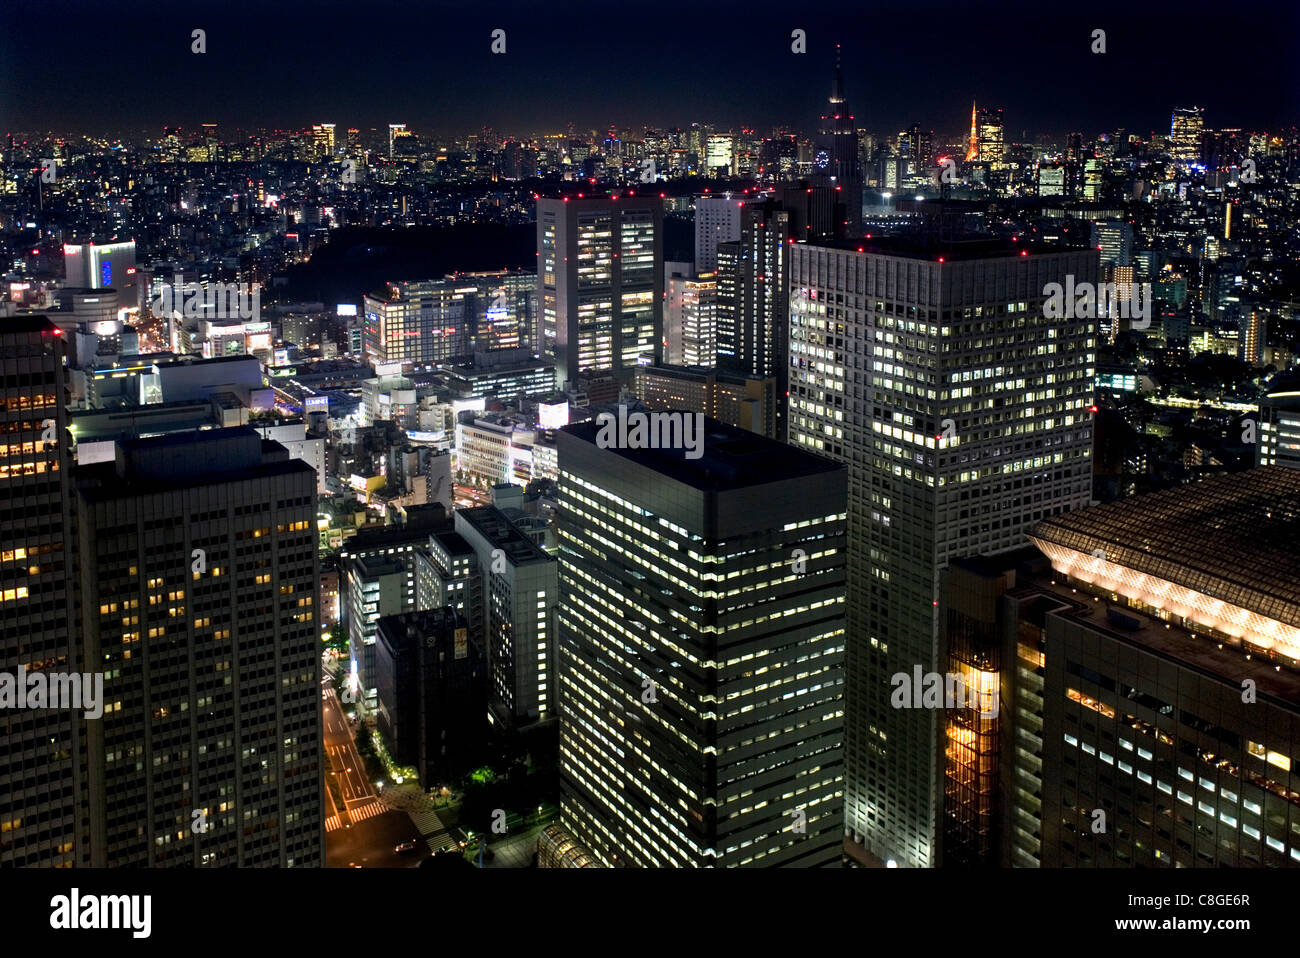 Night skyline view of Tokyo's endless urban sprawl and development near South Shinjuku, Tokyo, Japan - Stock Image